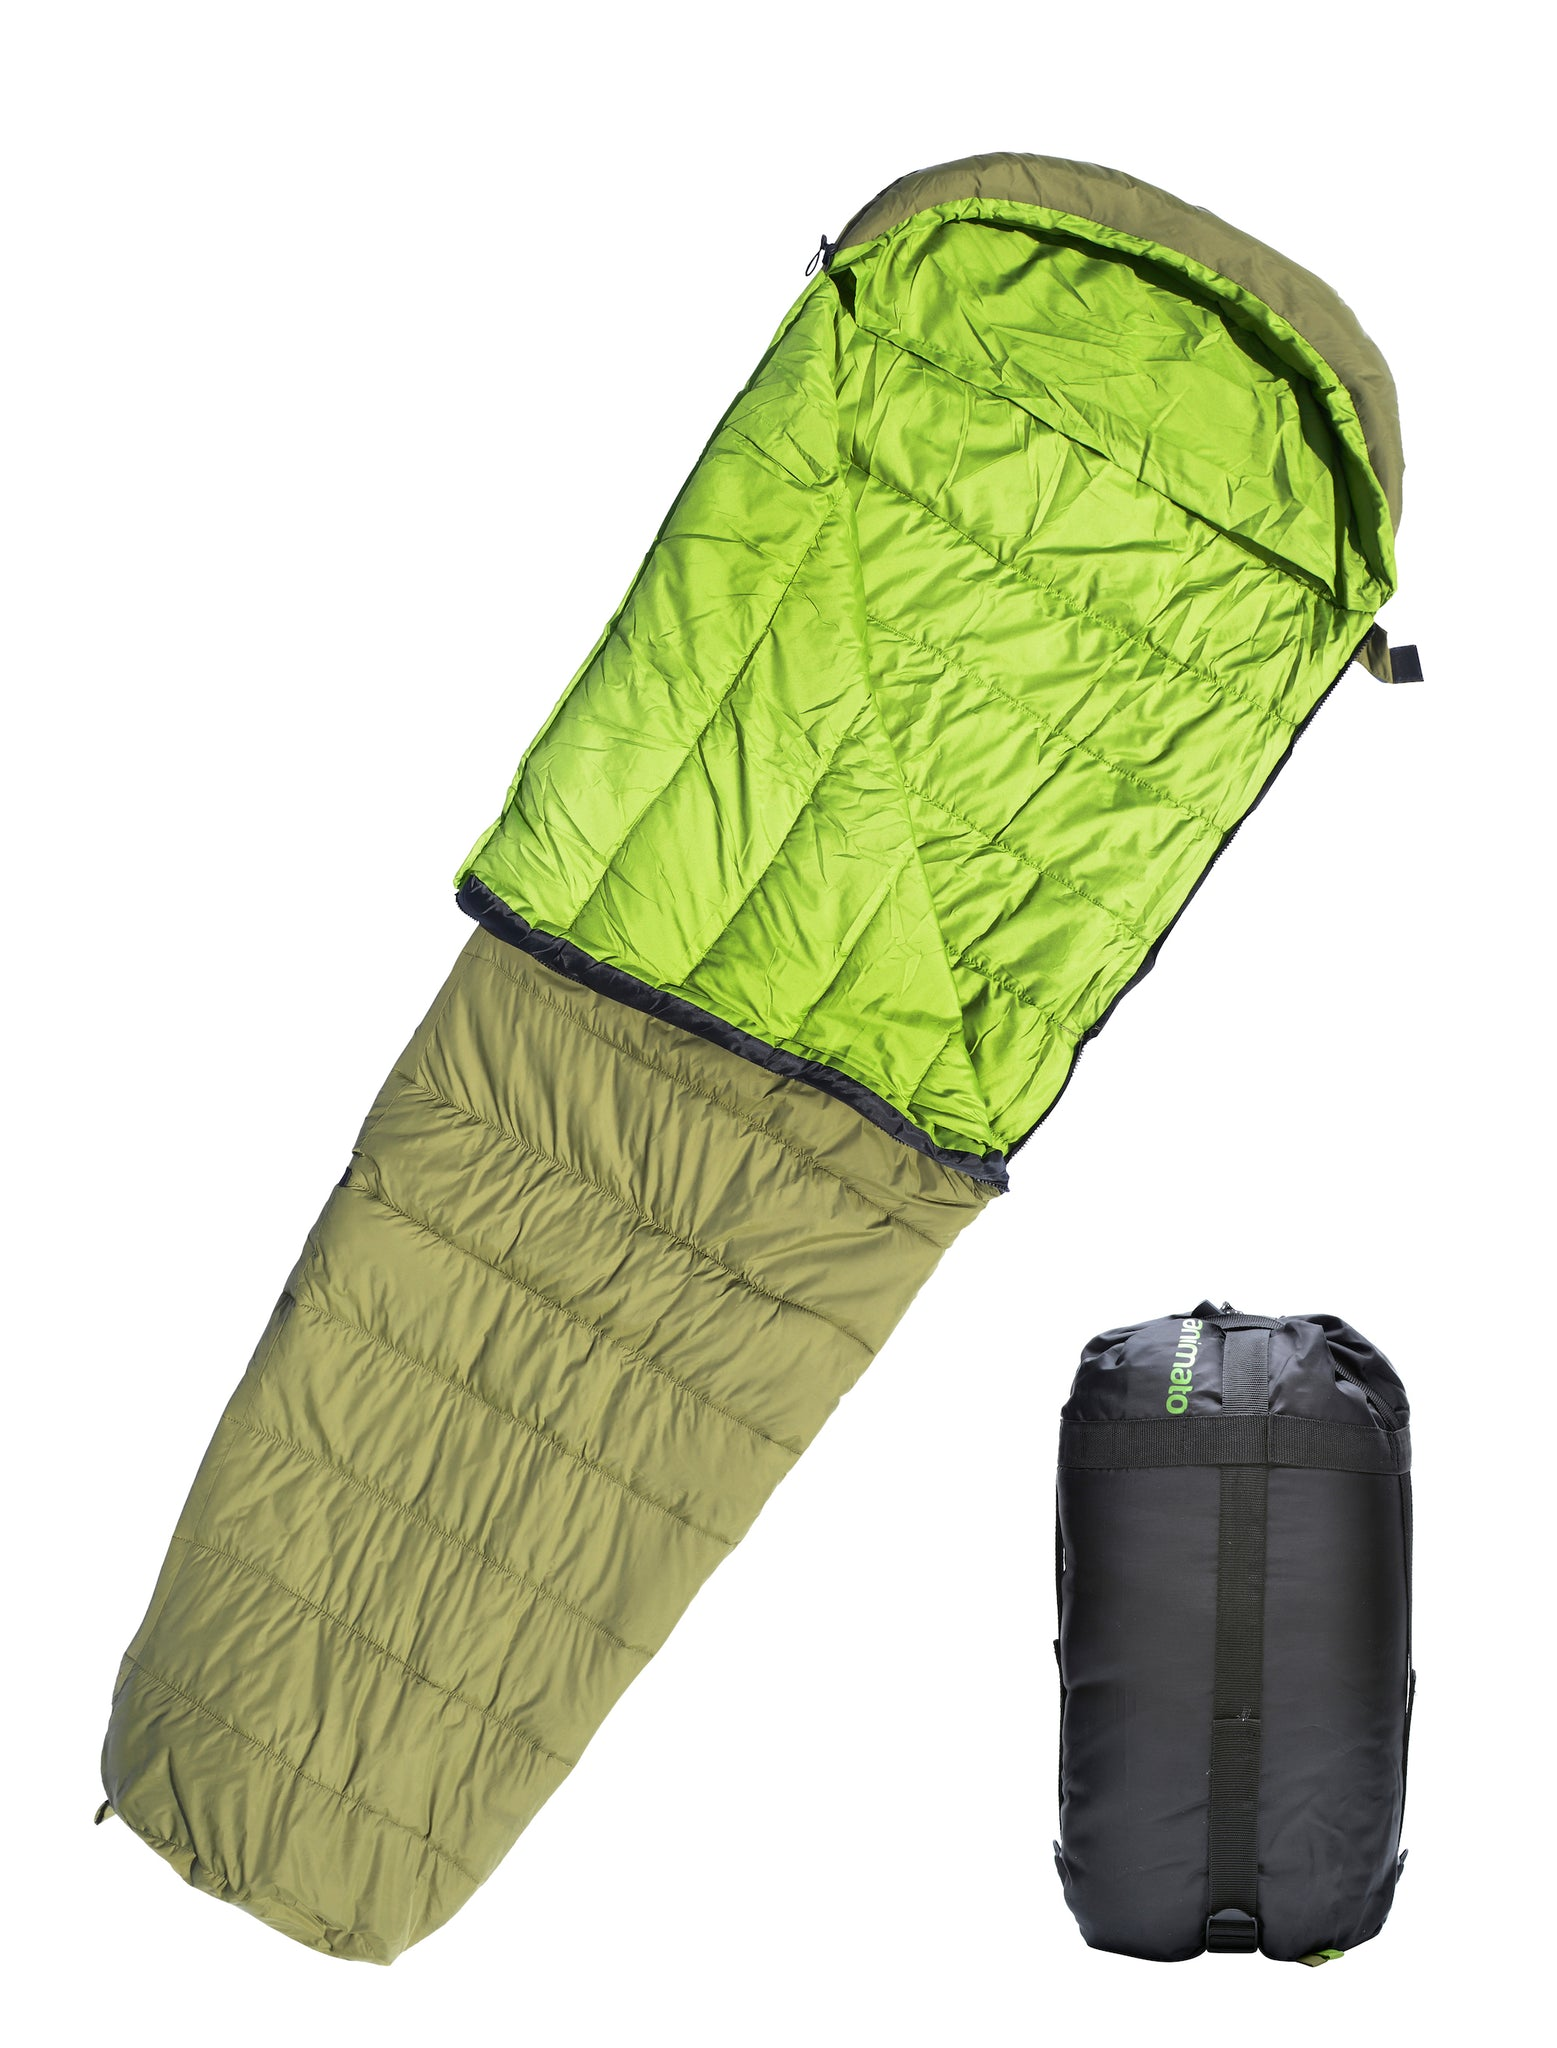 Lightweight Waterproof Mummy Sleeping Bag For Backpacking Camping Hiking Outdoors Travel Ultra Light With Compression Sack